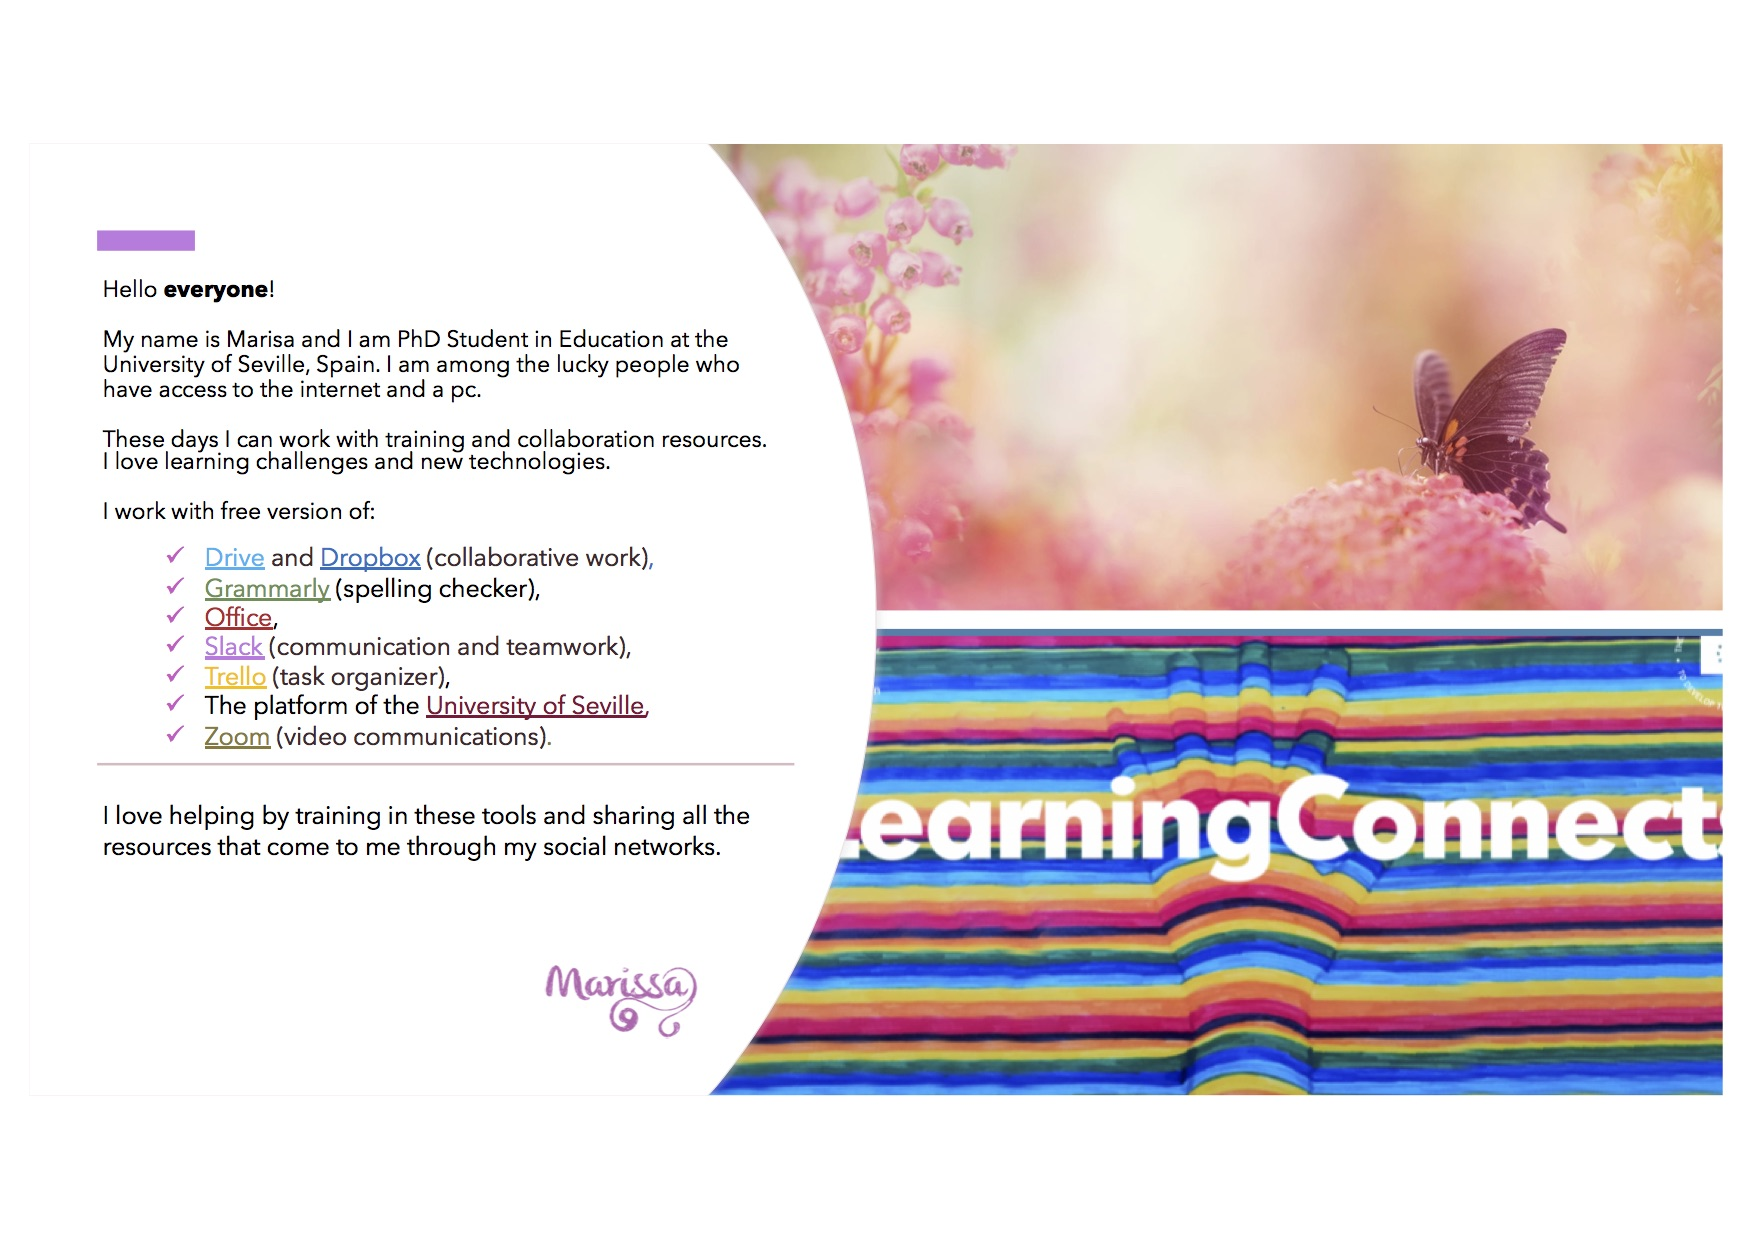 Marisa_LearningConnects